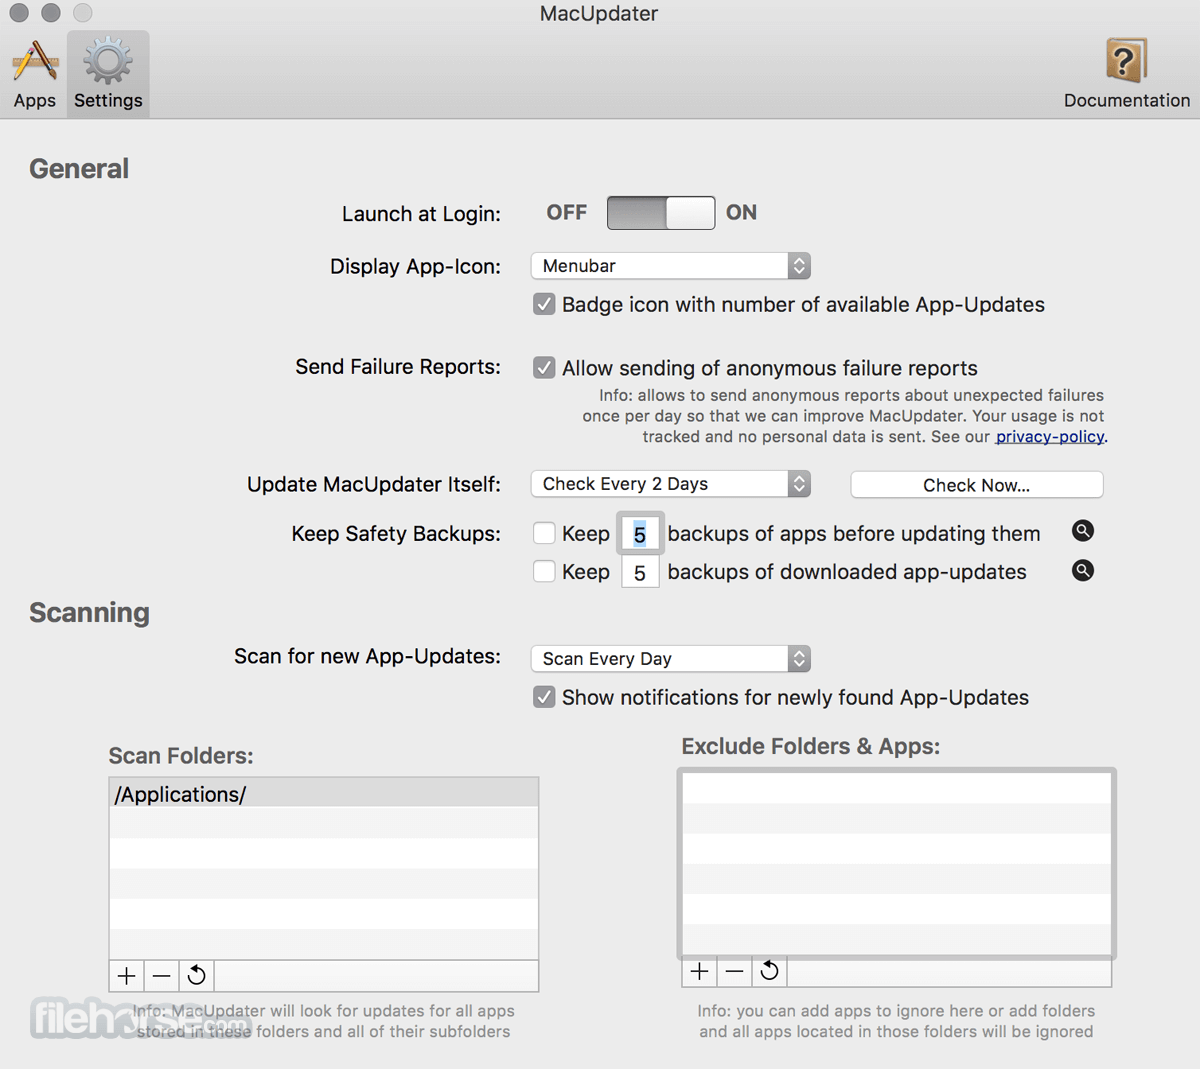 MacUpdater 1.5.1 Screenshot 4